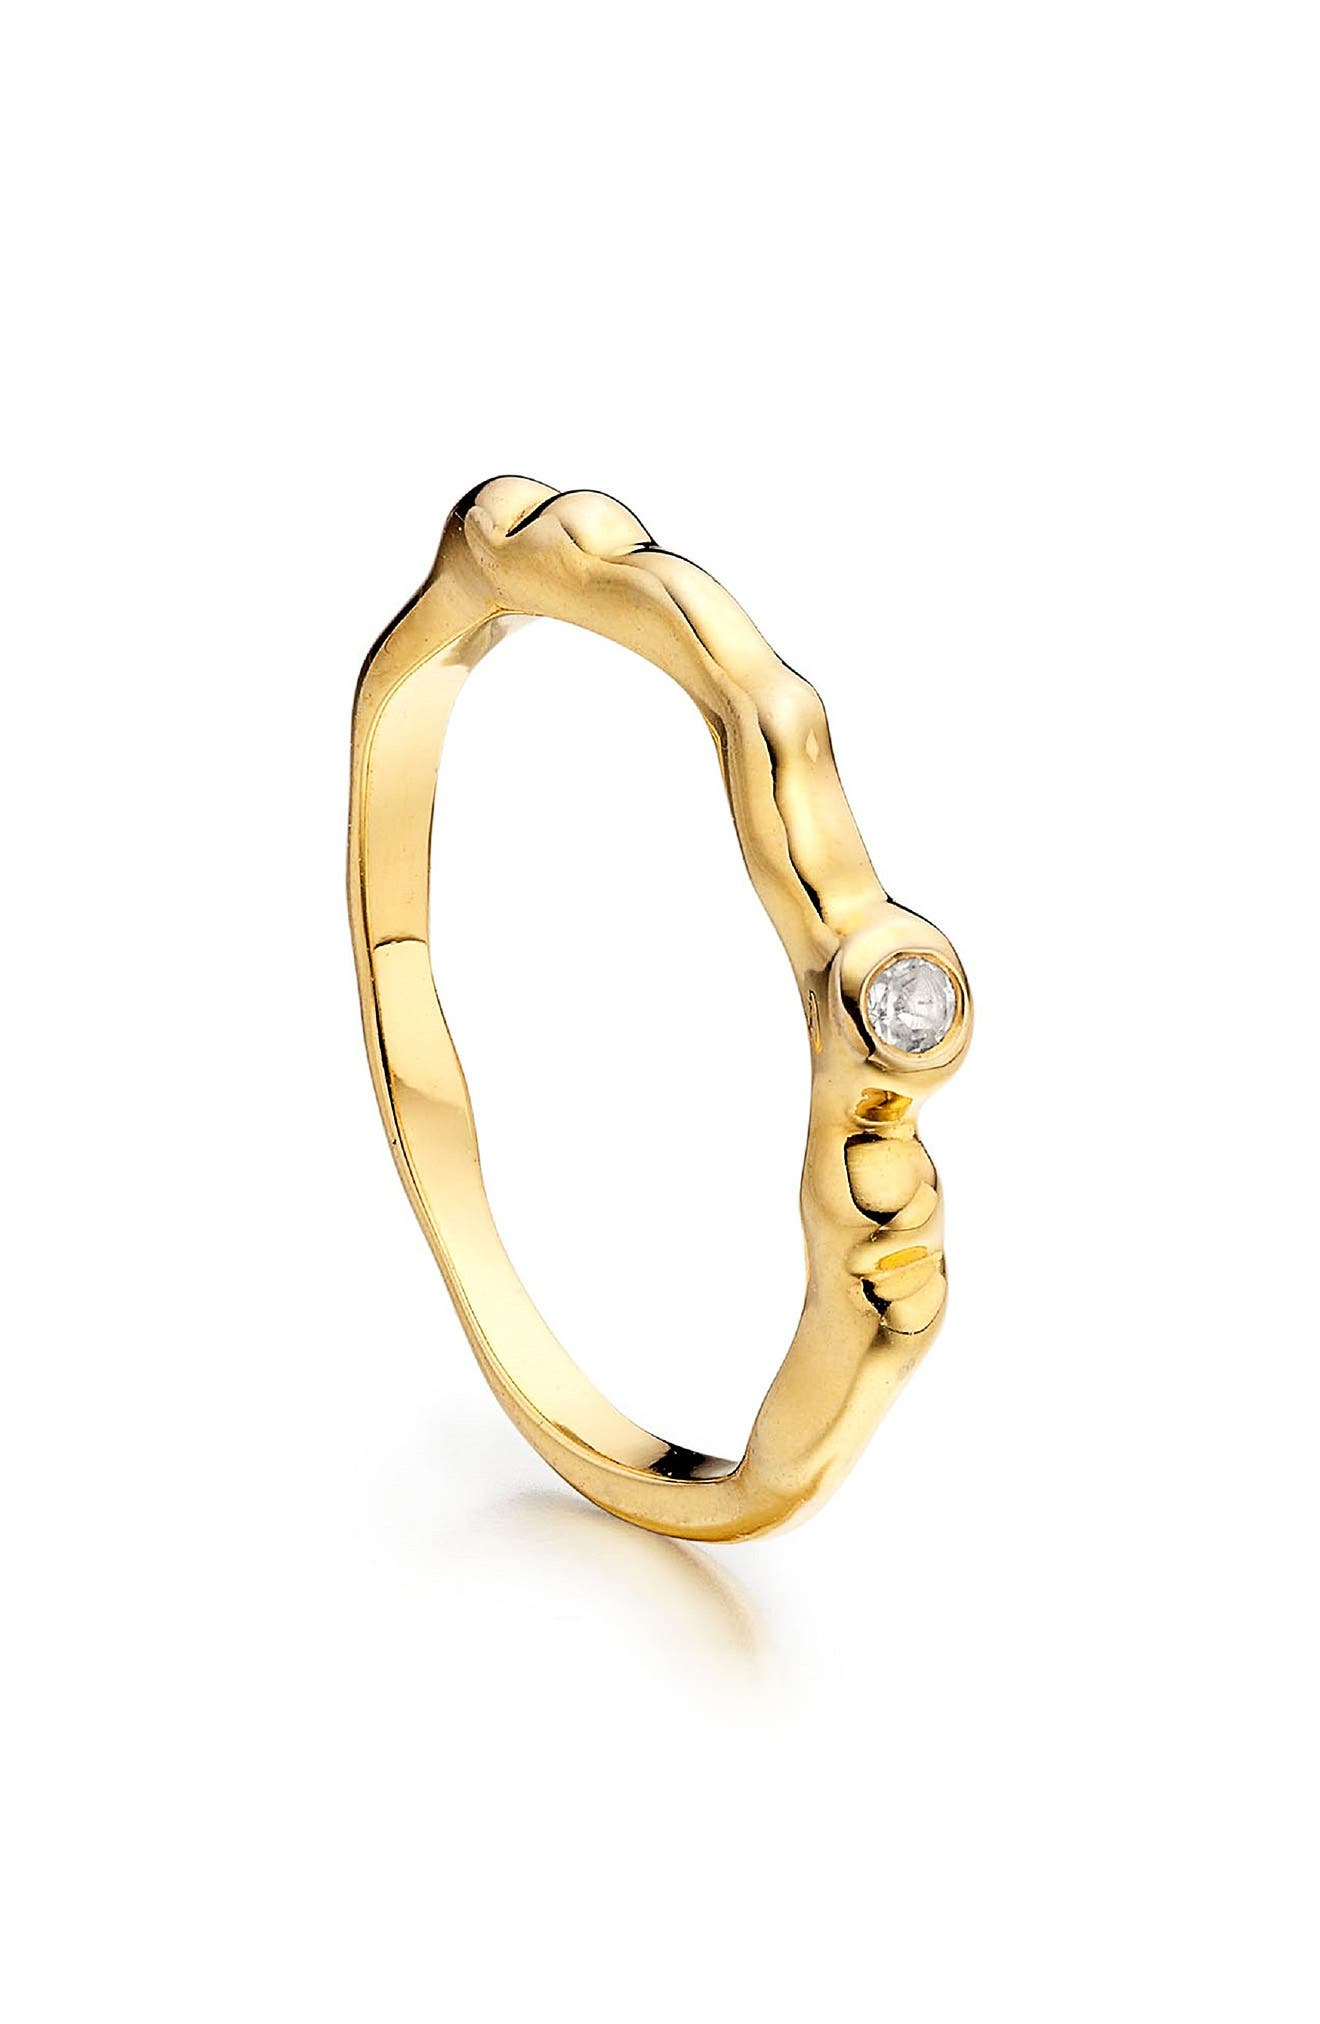 Siren Band Ring,                             Alternate thumbnail 2, color,                             Gold/ White Topaz